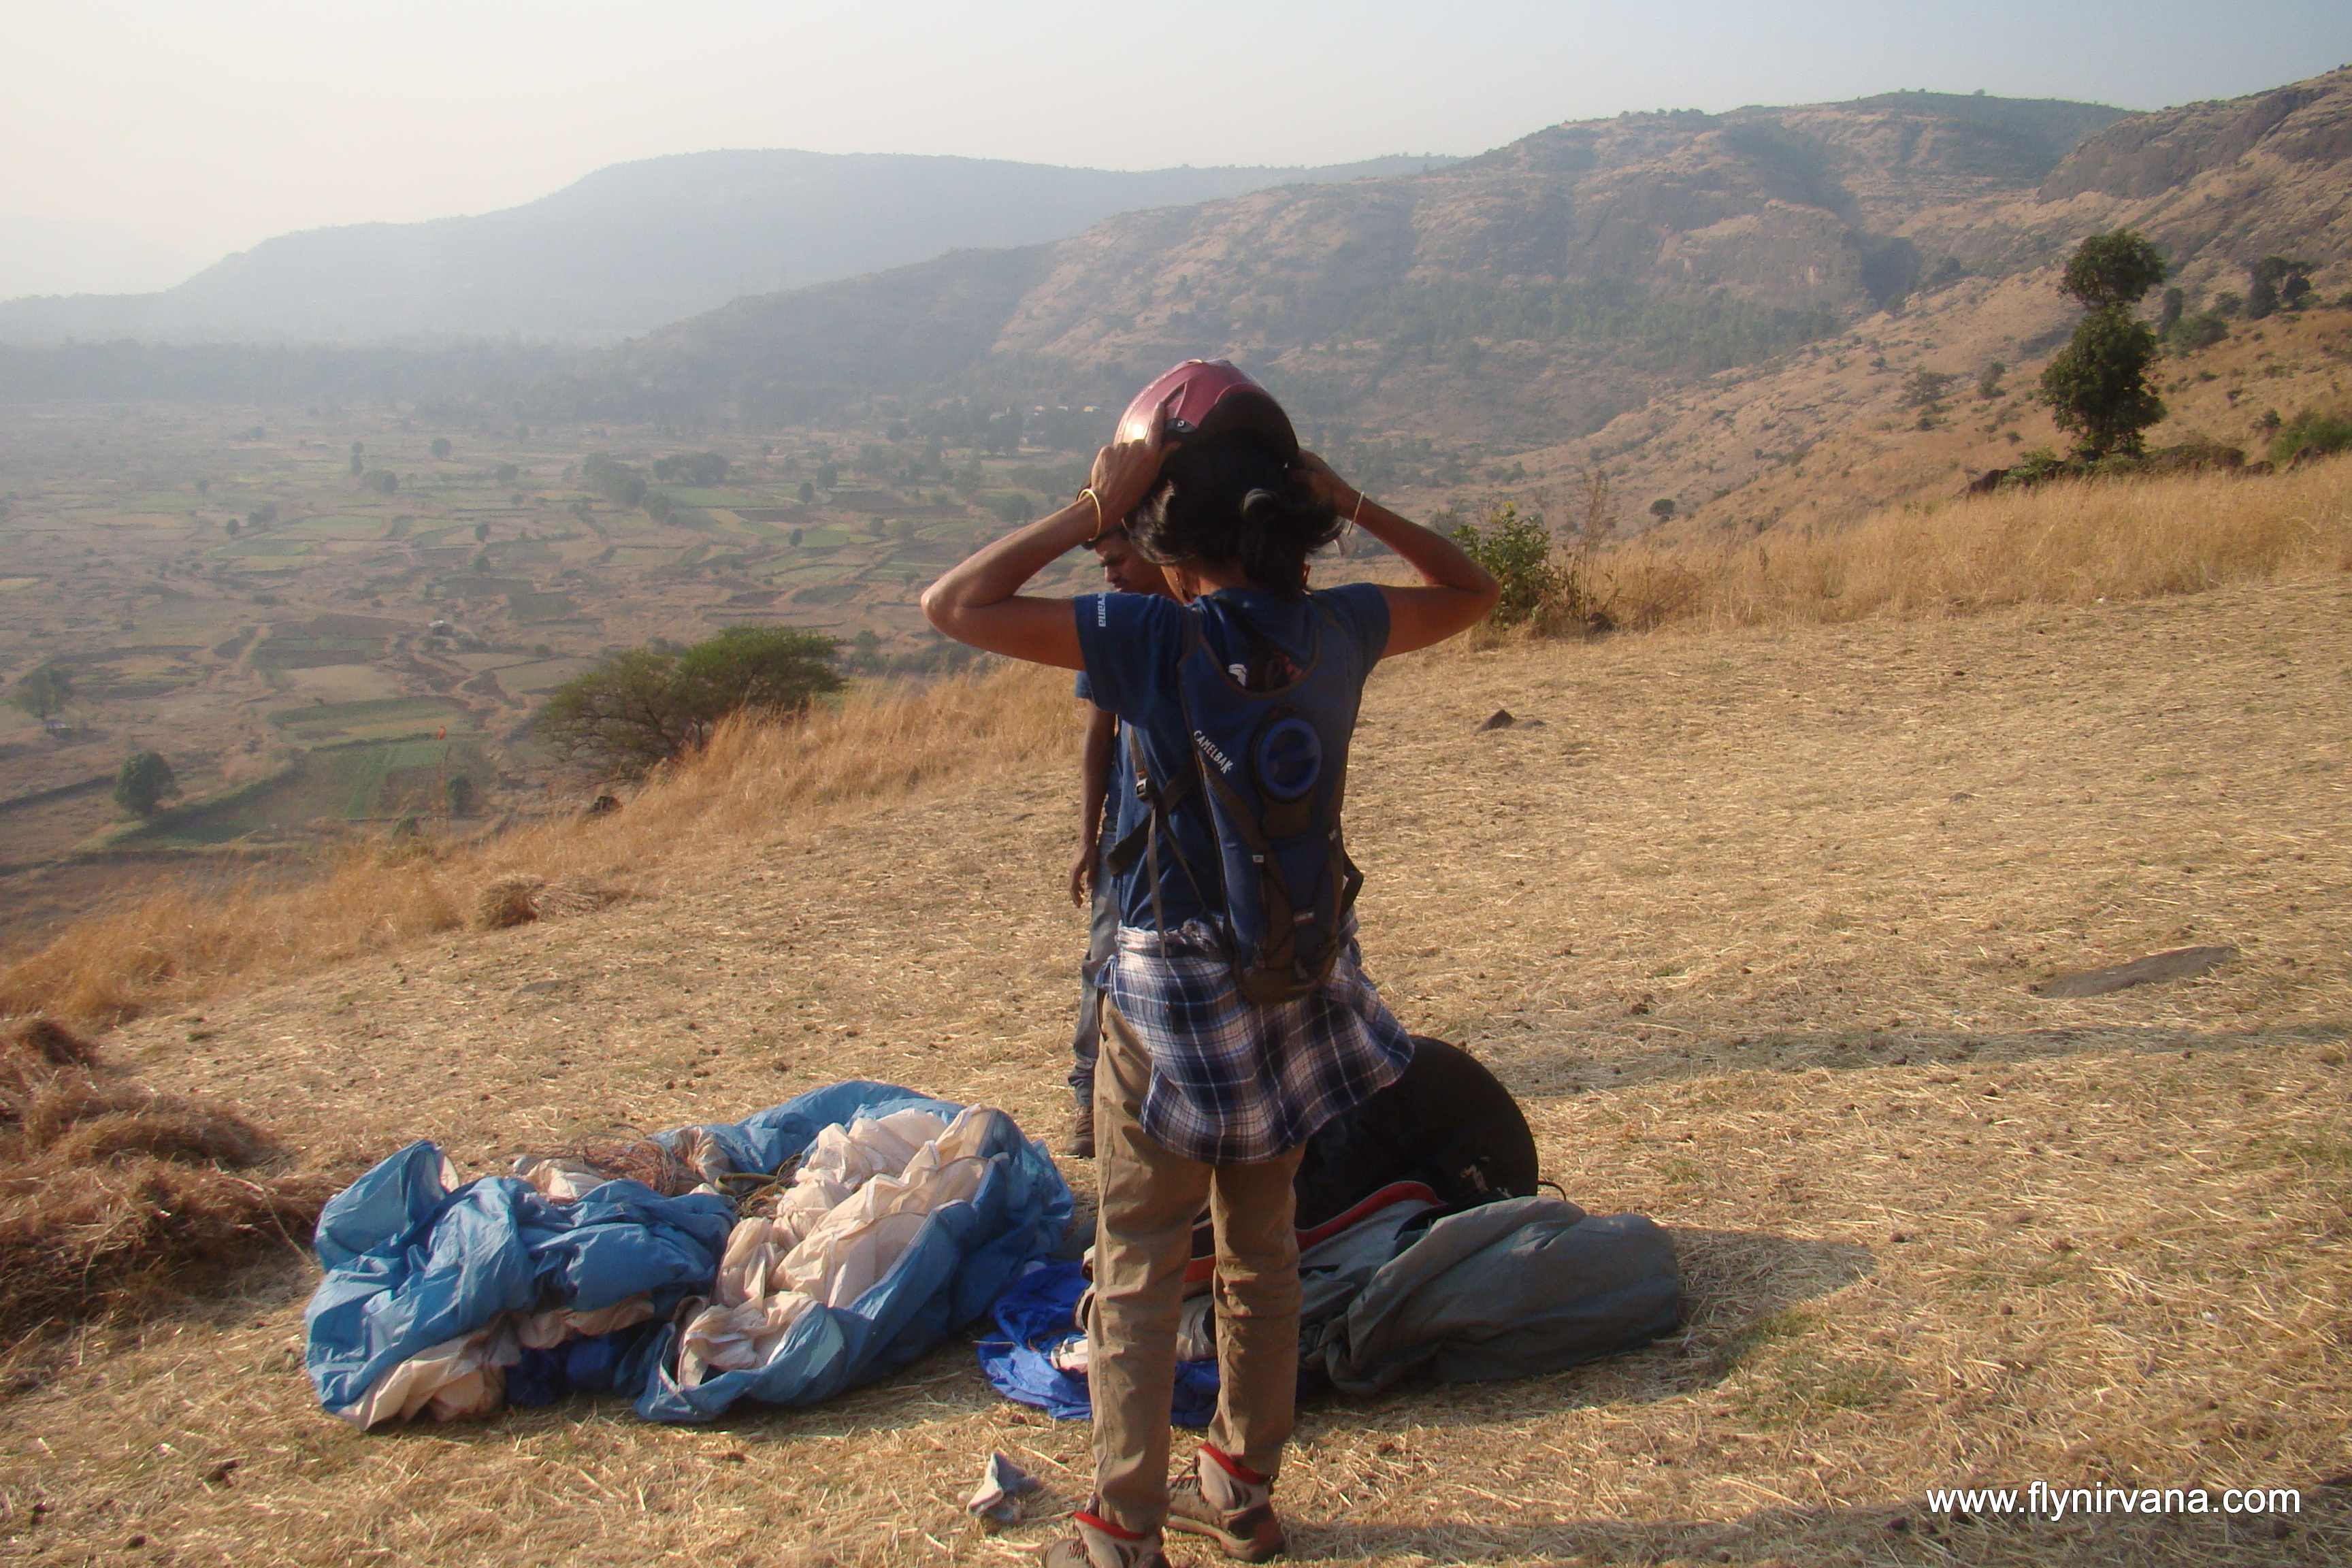 Ready to takeoff - Astrid Rao at the Shelar Site, Kamshet